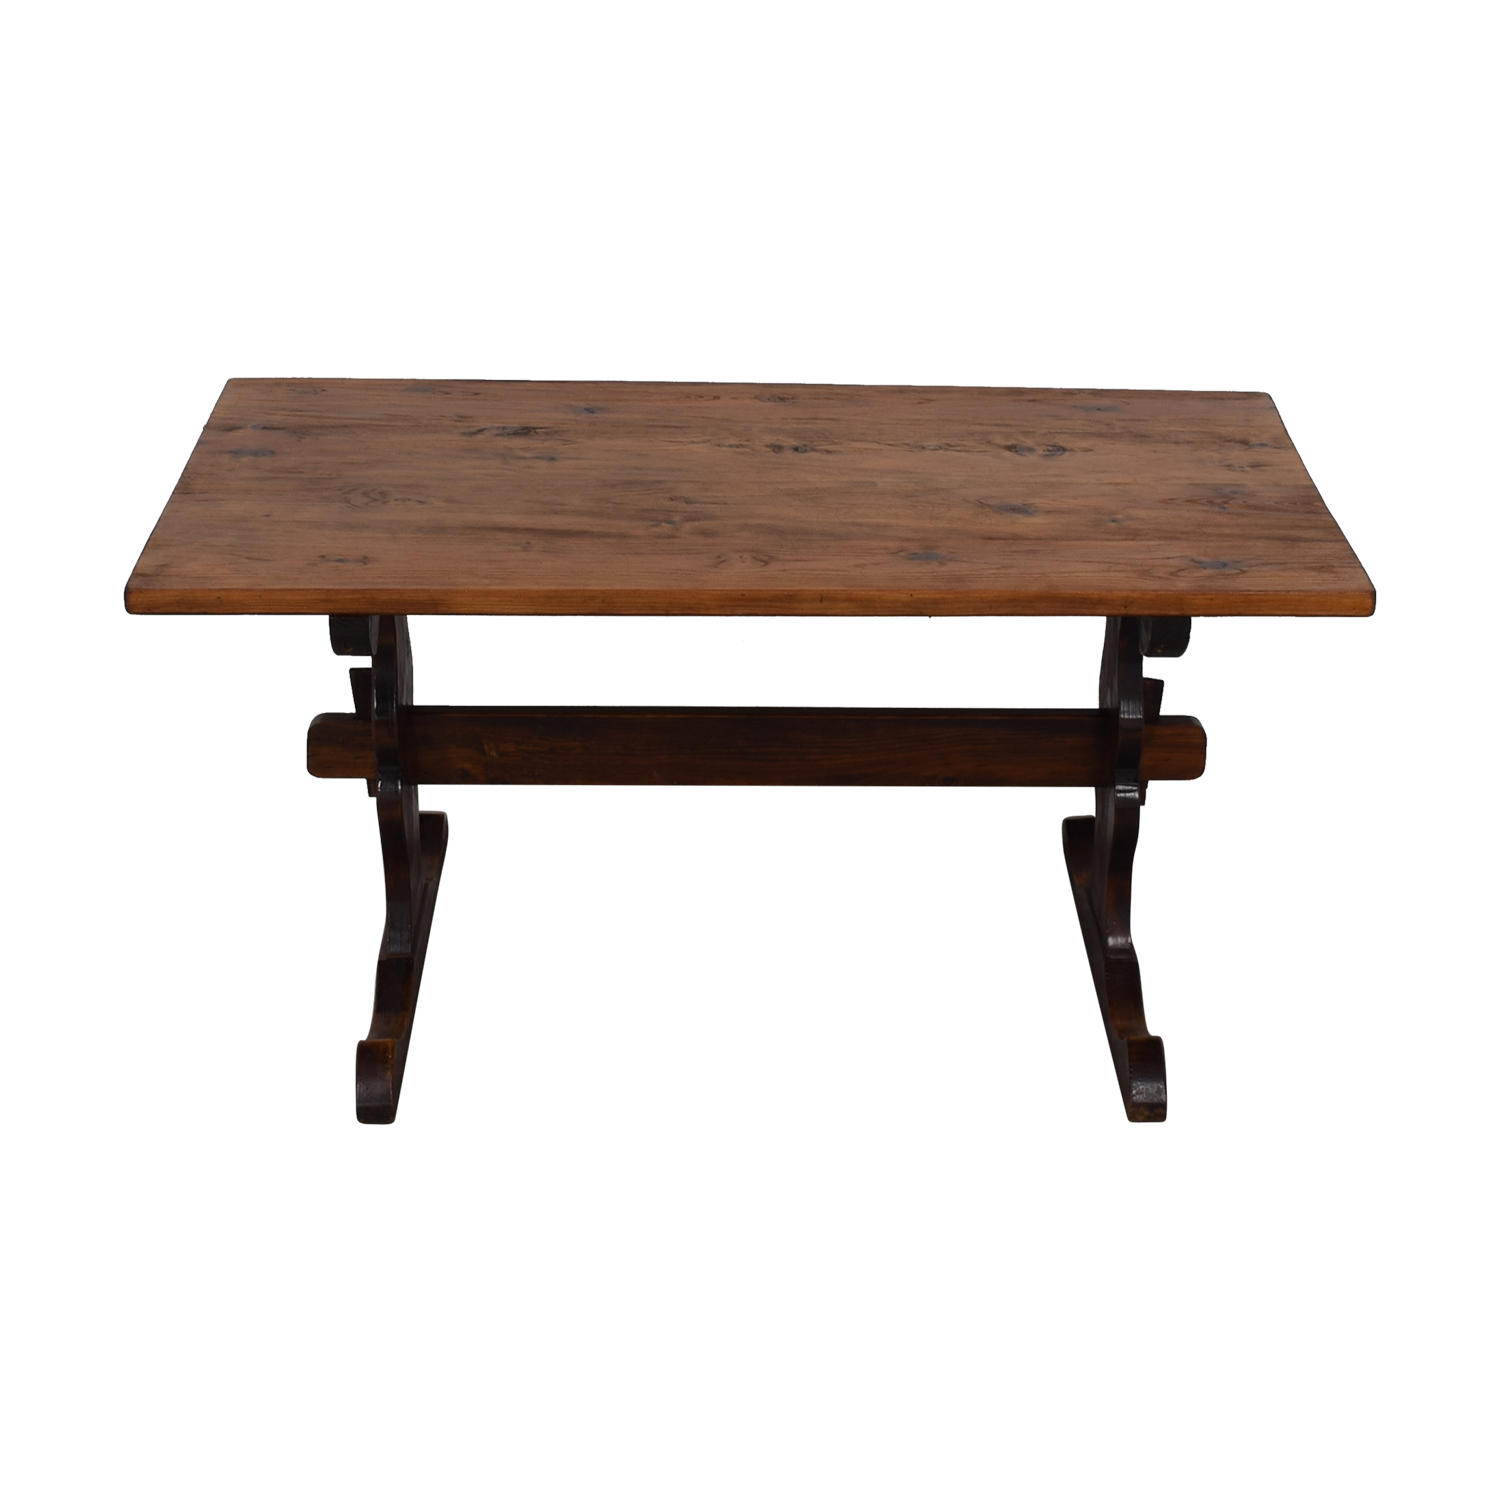 83% OFF - South African Pine Dining Room Table / Tables